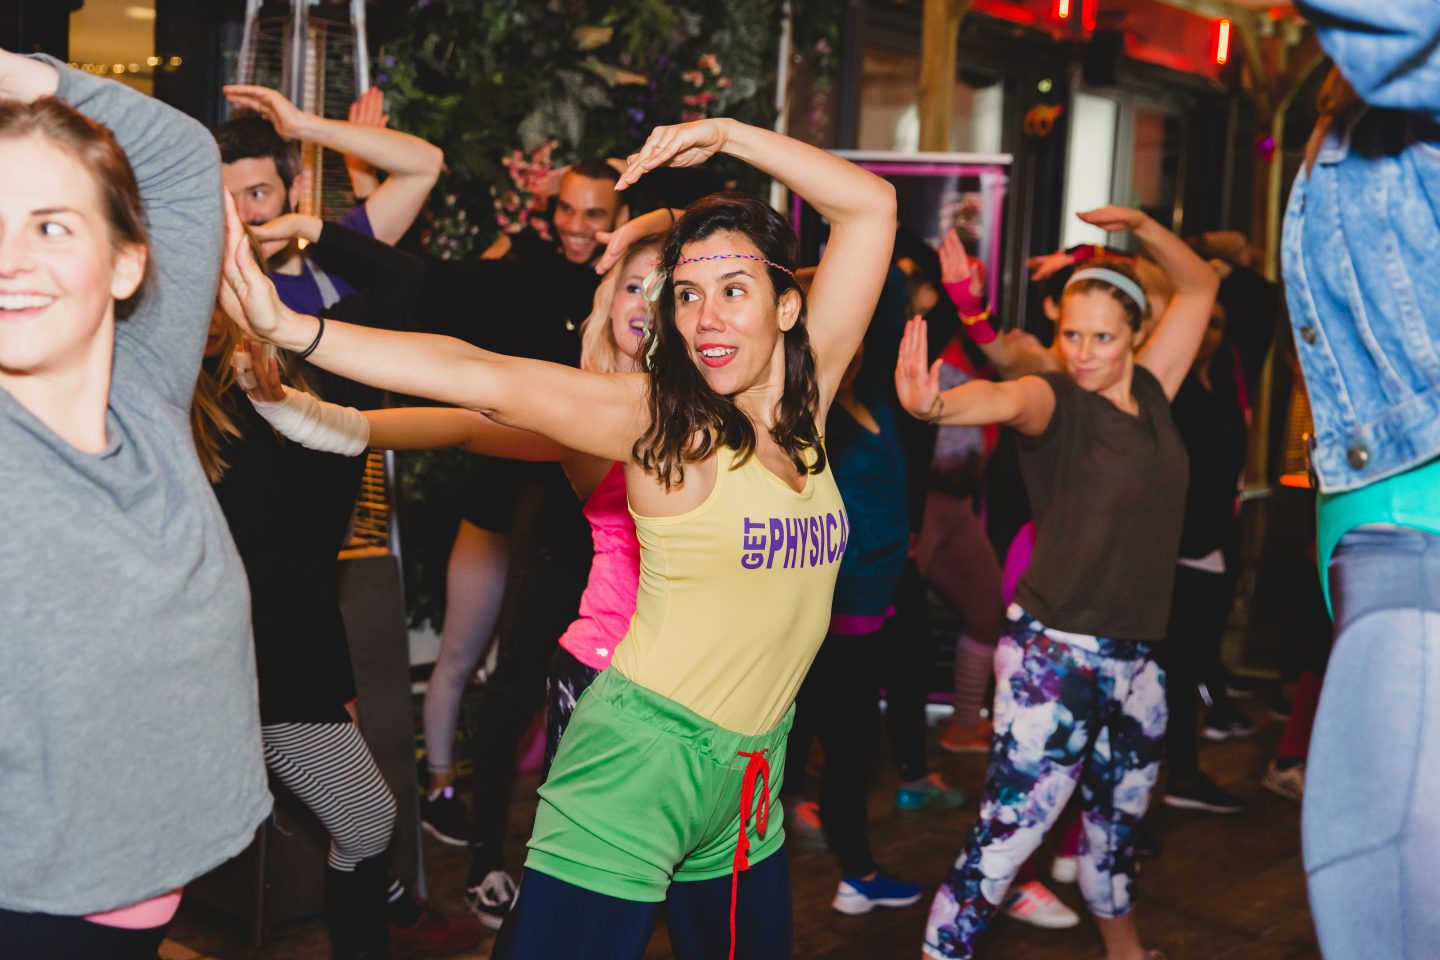 A woman dressed in retro 80s fitness clothes dances with her hands in the air. Wellness, Gameplan A.